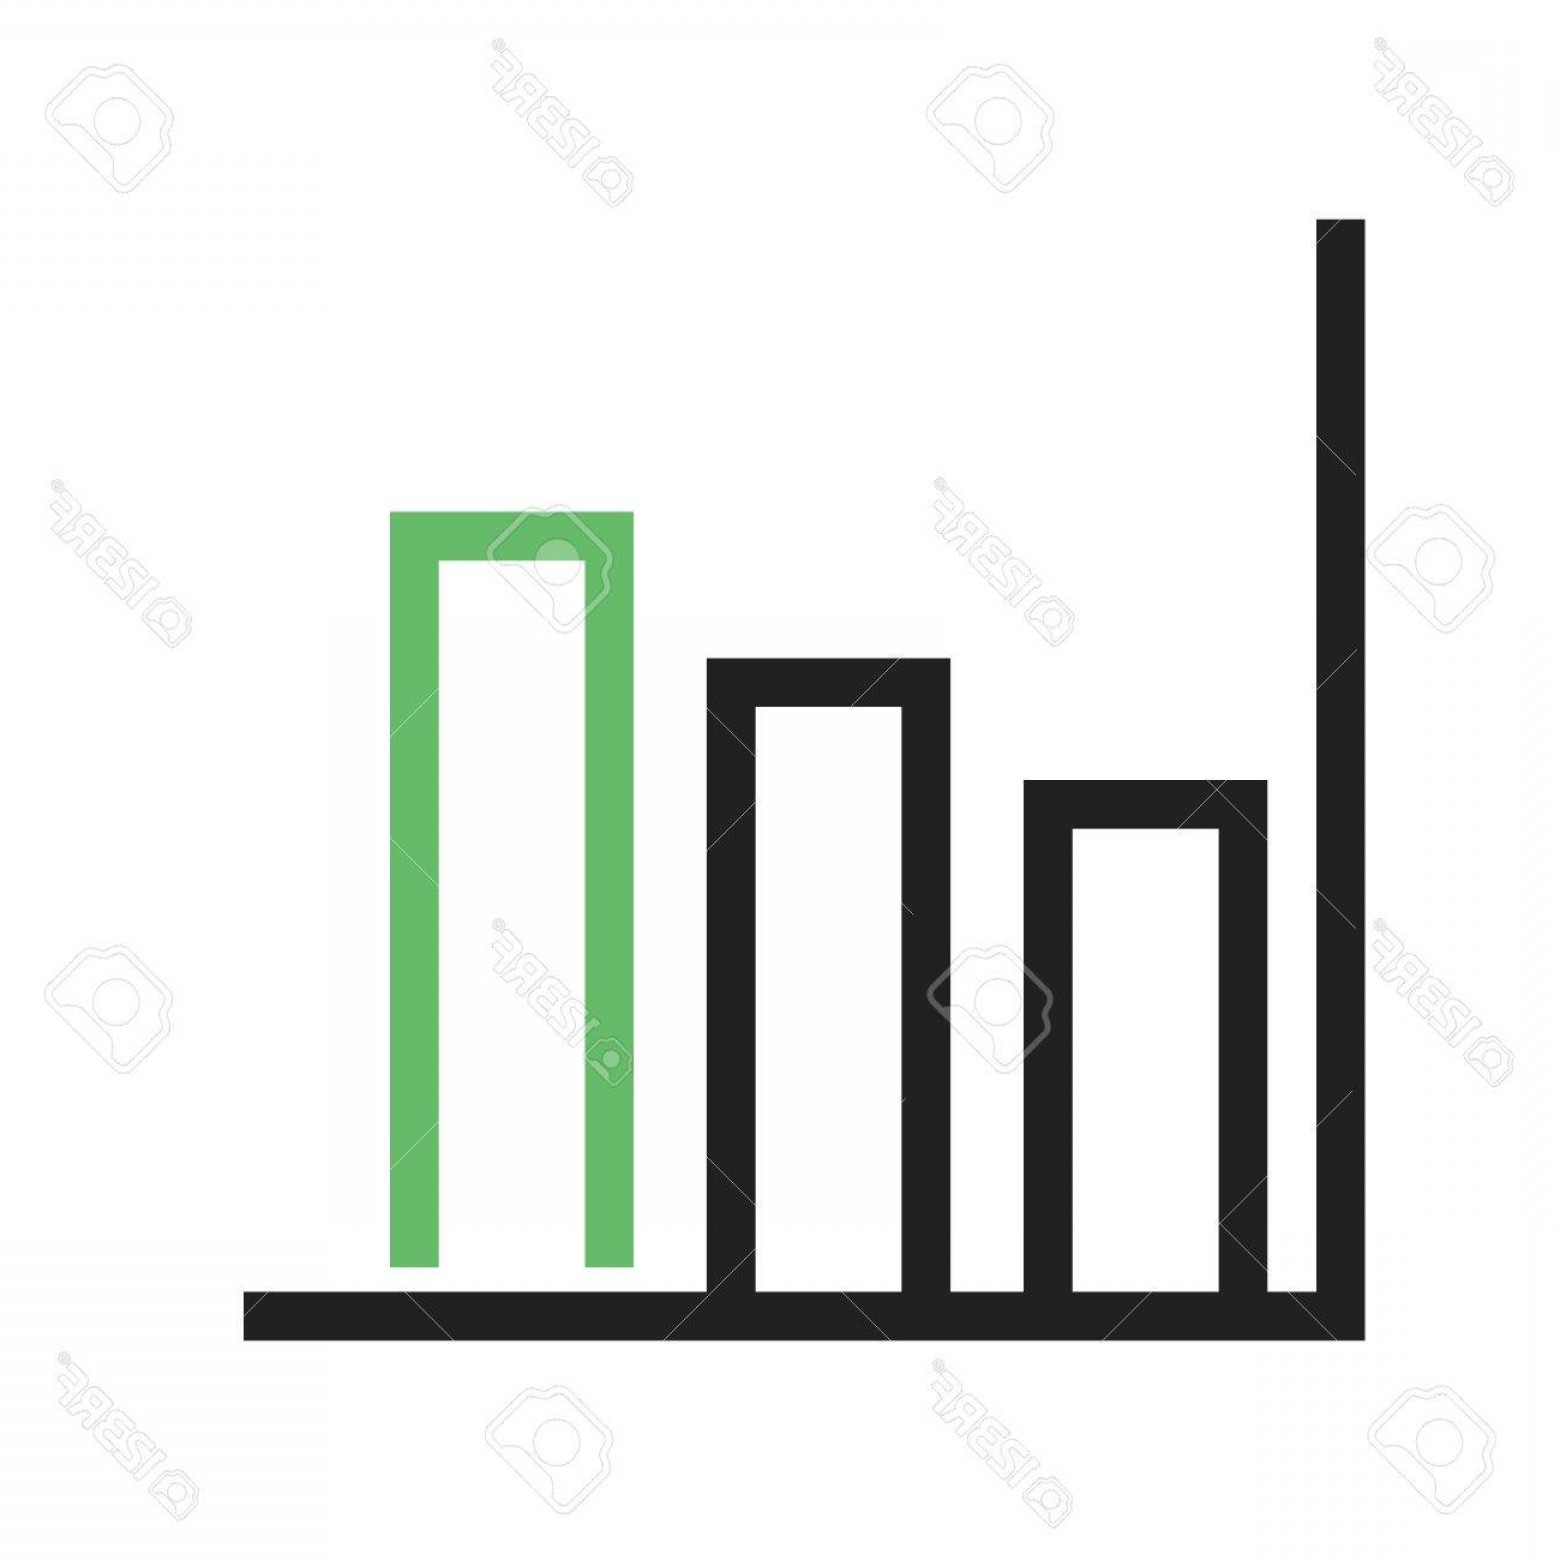 Bar Graph Icon Vector: Photostock Vector Chart Bar Graph Icon Vector Image Can Also Be Used For Business Management Suitable For Use On Web A